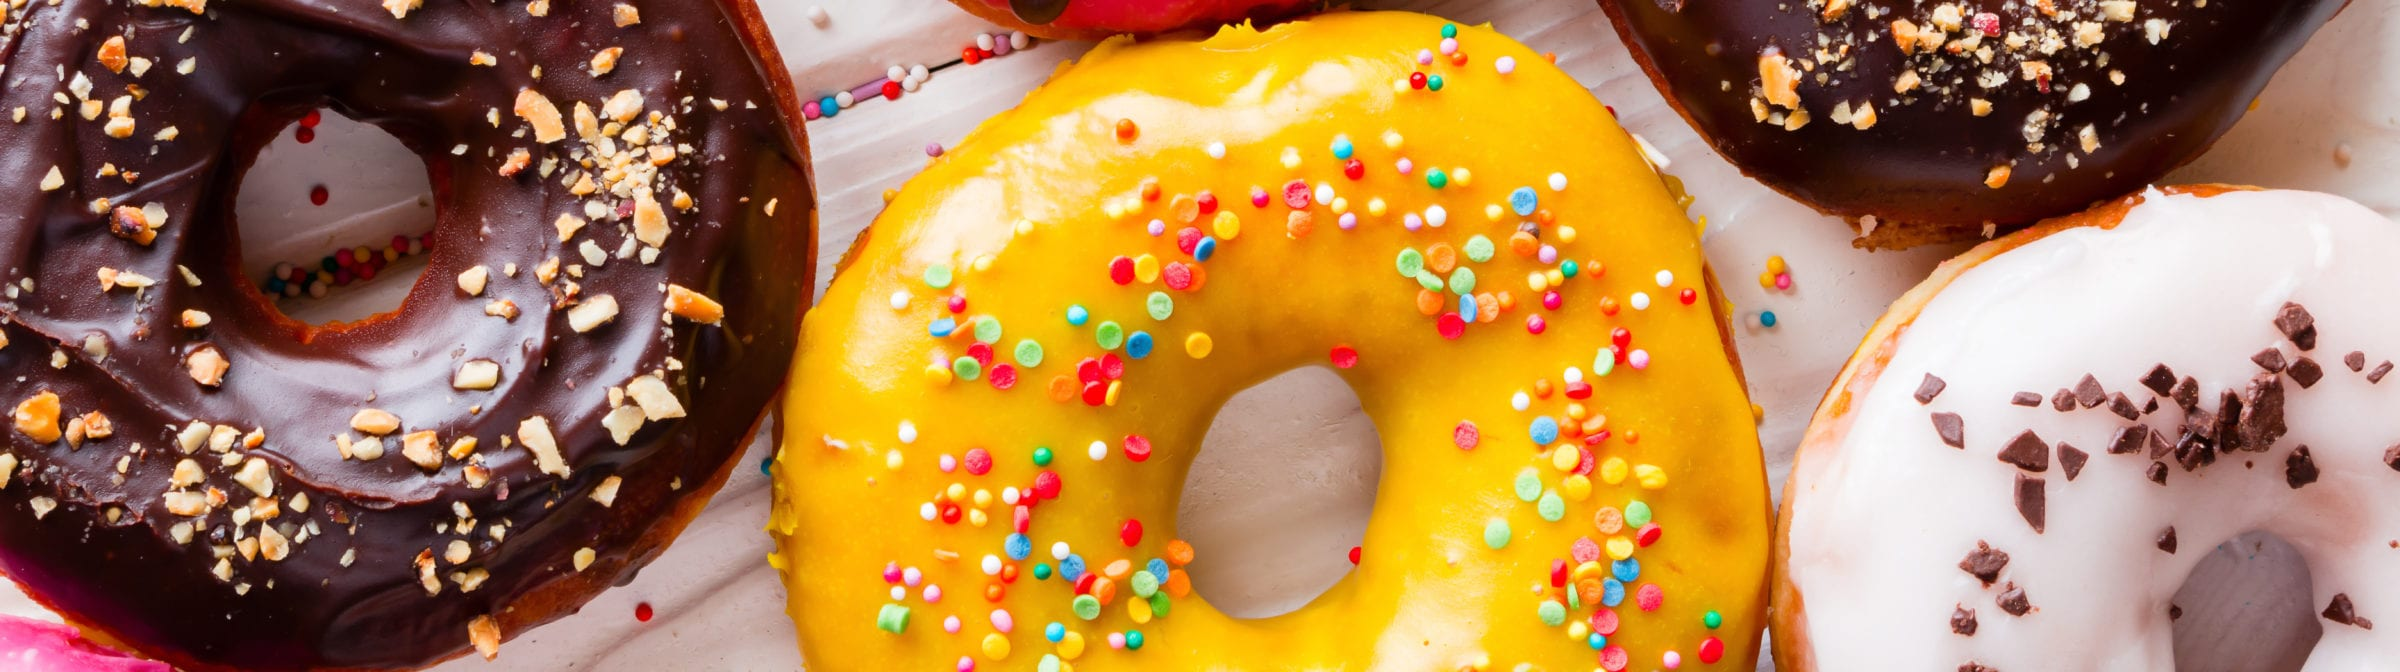 A colorful assortment of donuts